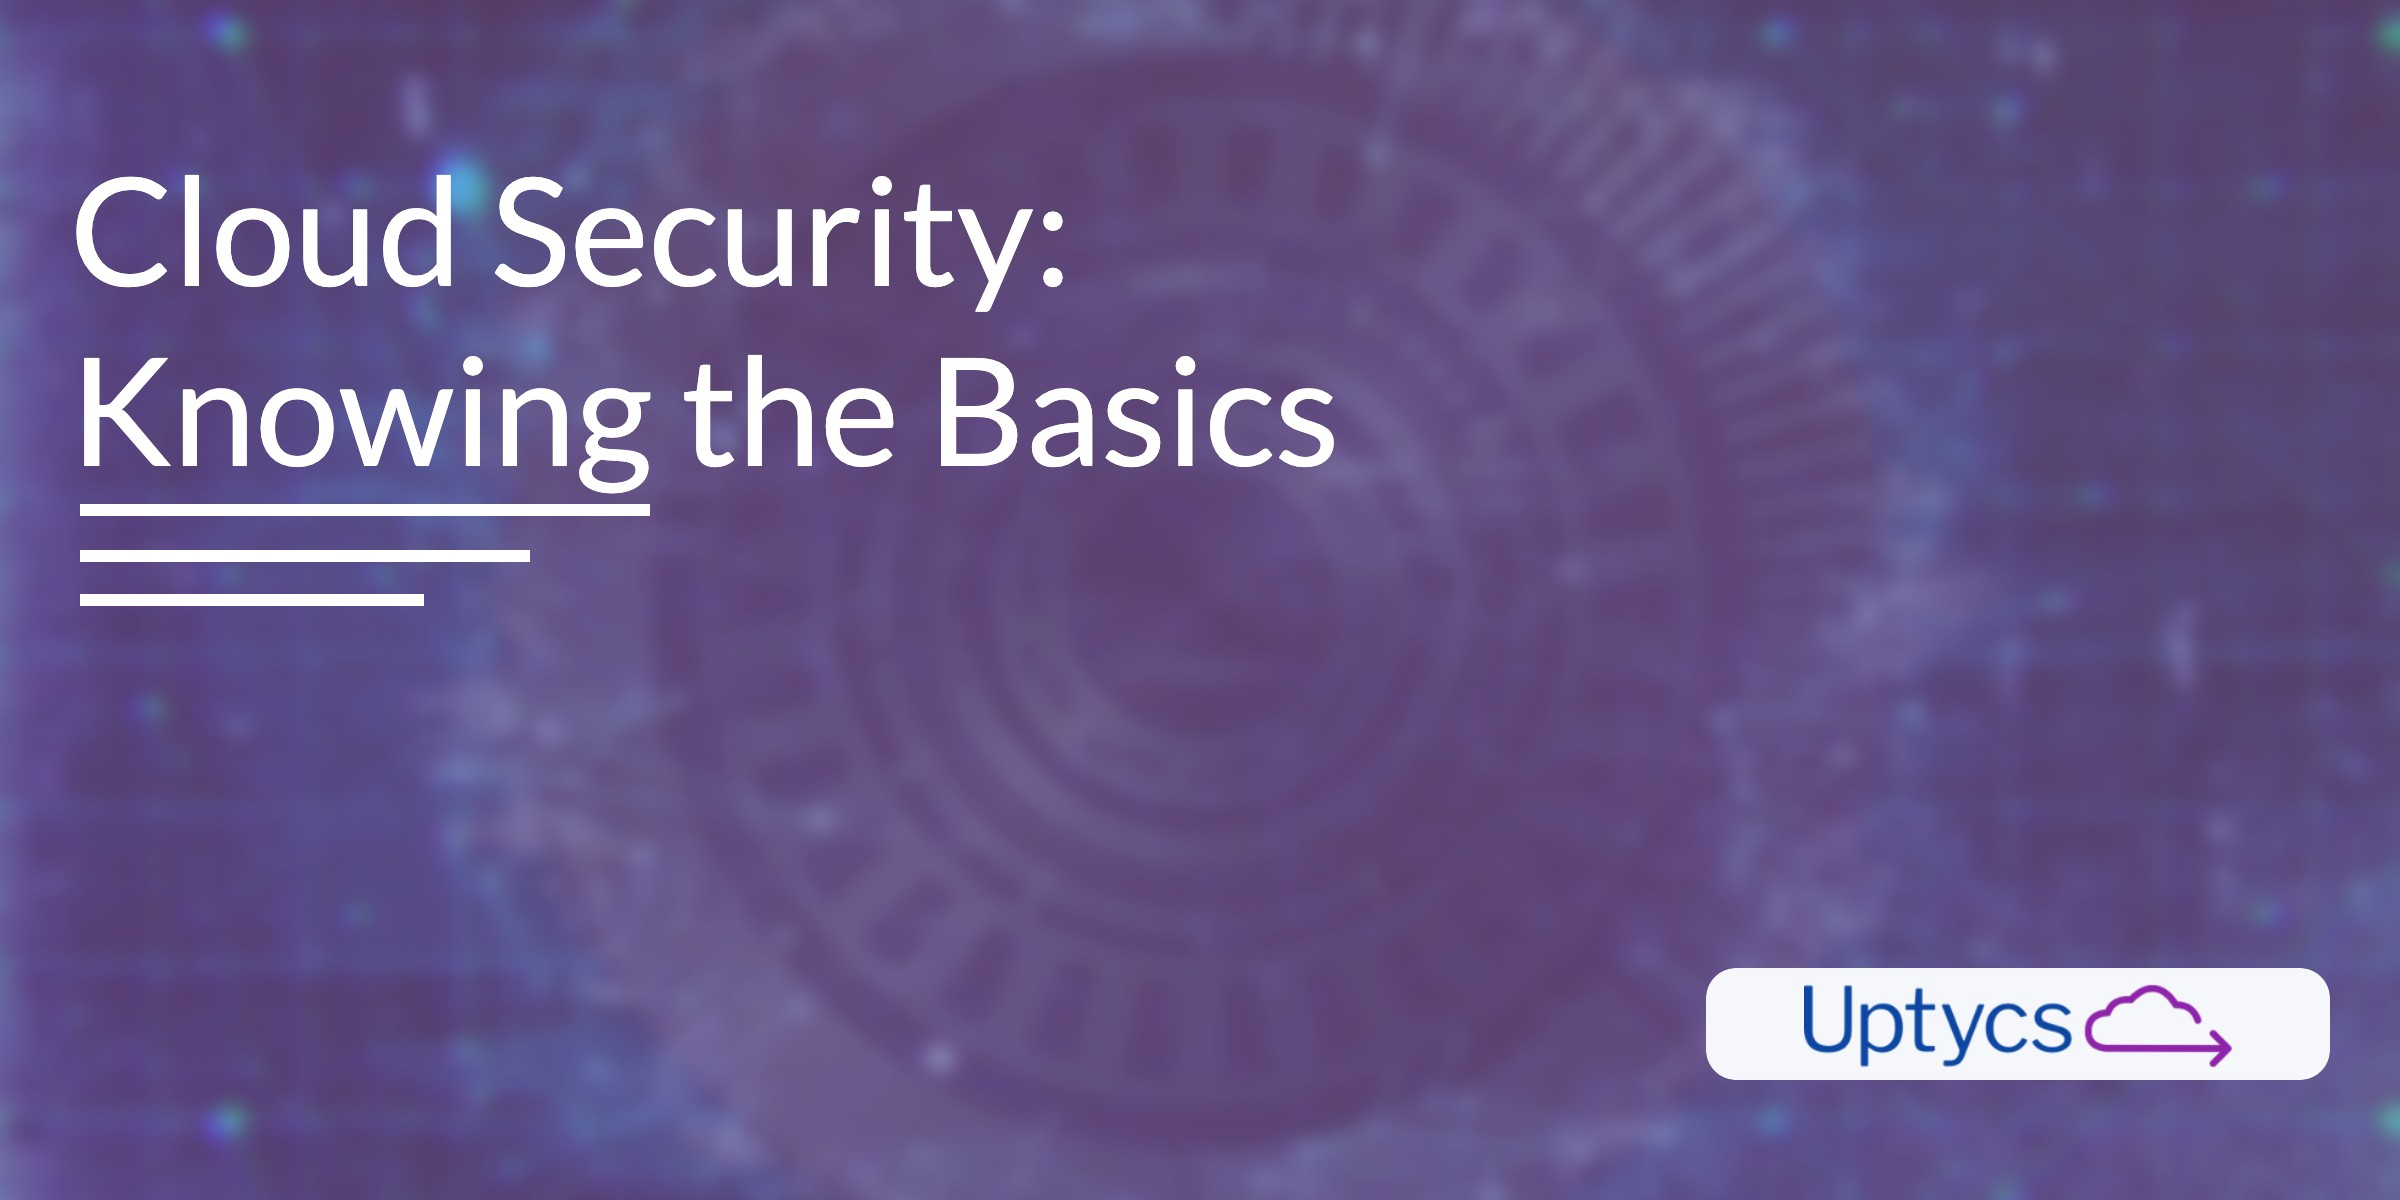 Cloud Security: Knowing the Basics